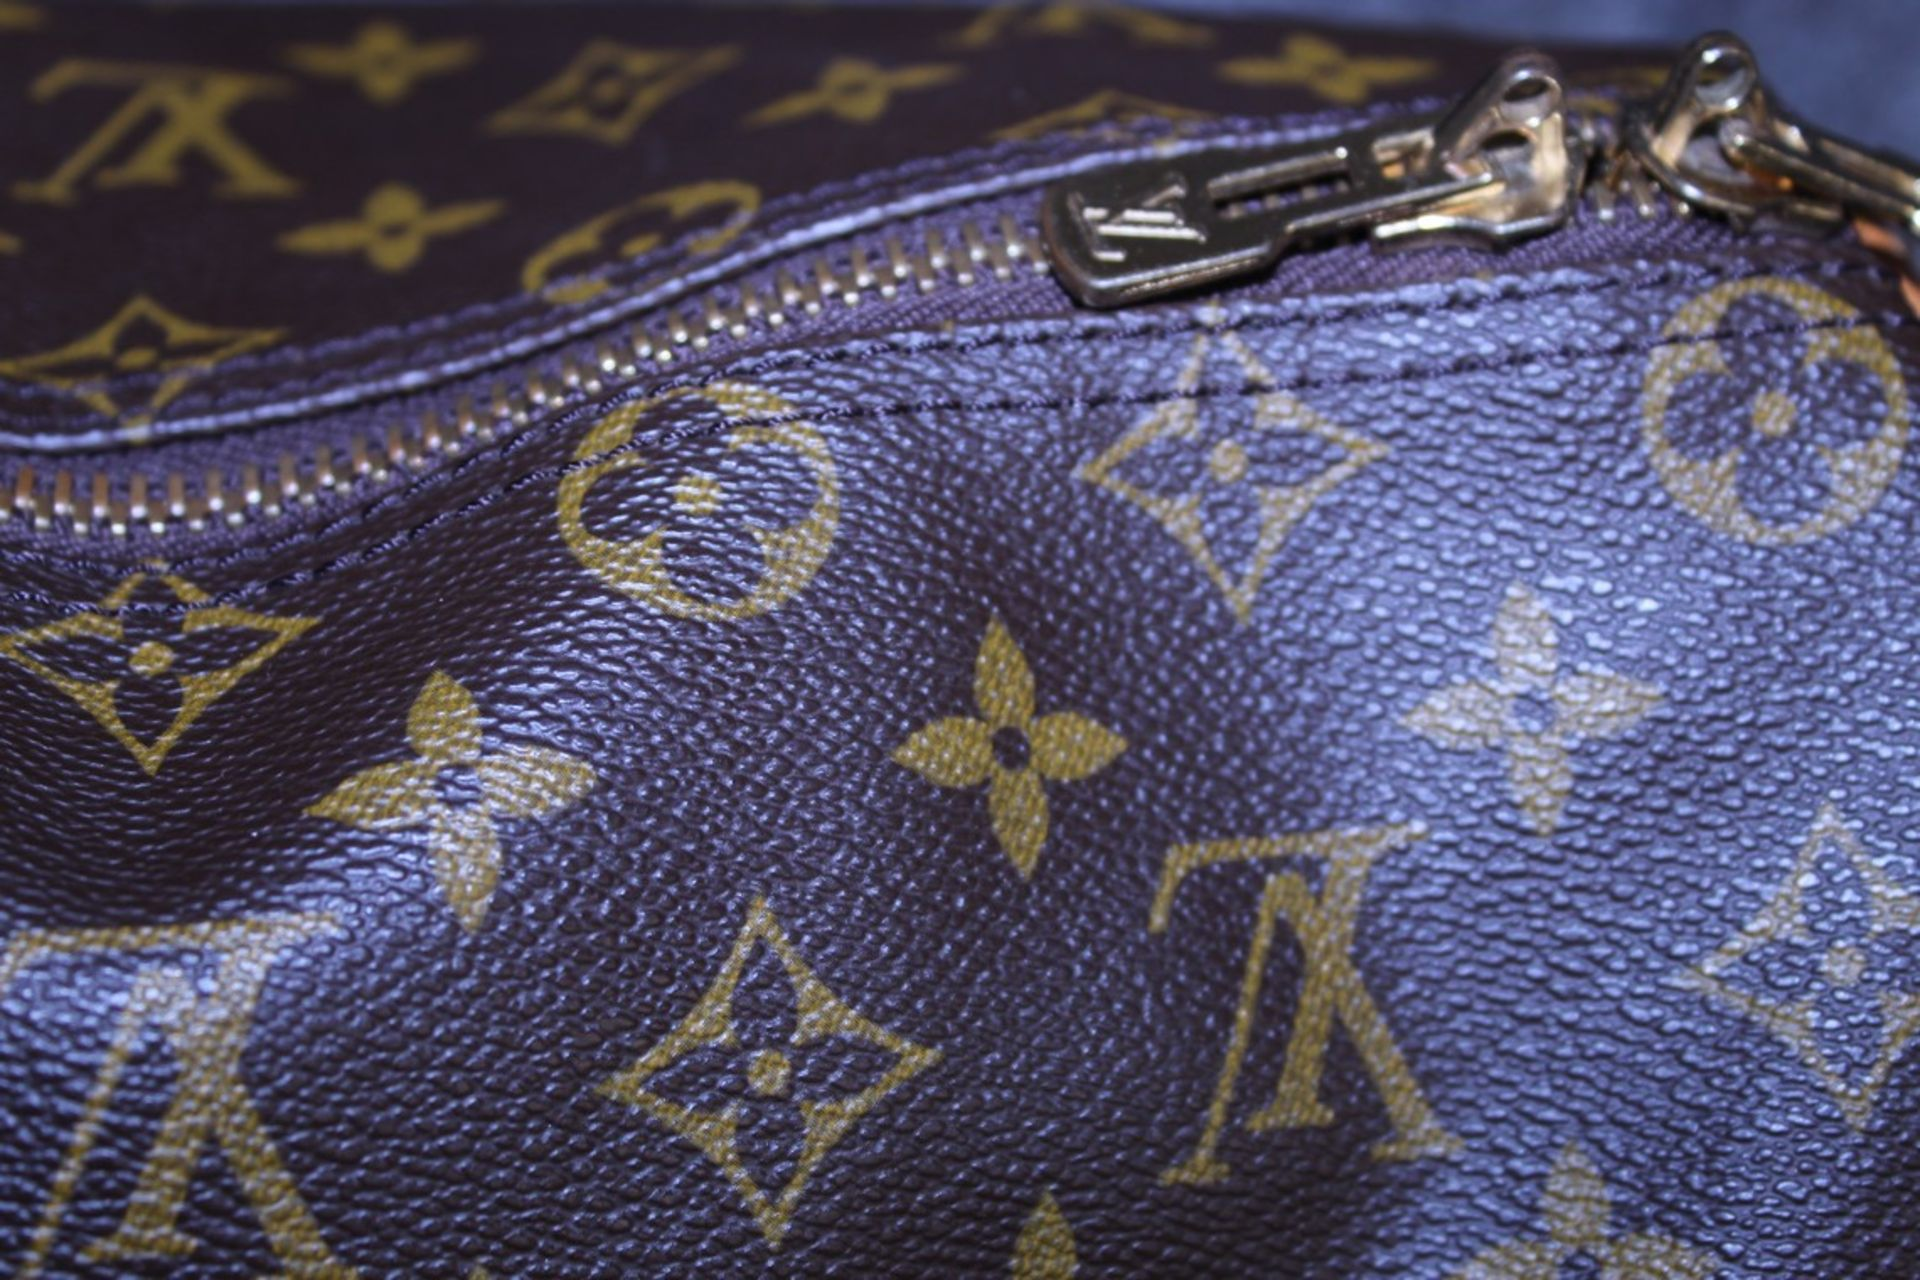 RRP 2,000 Louis Vuitton Keepall 50 Bandouliere Shoulder Bag, Brown Coated Canvas Monogram, - Image 5 of 6